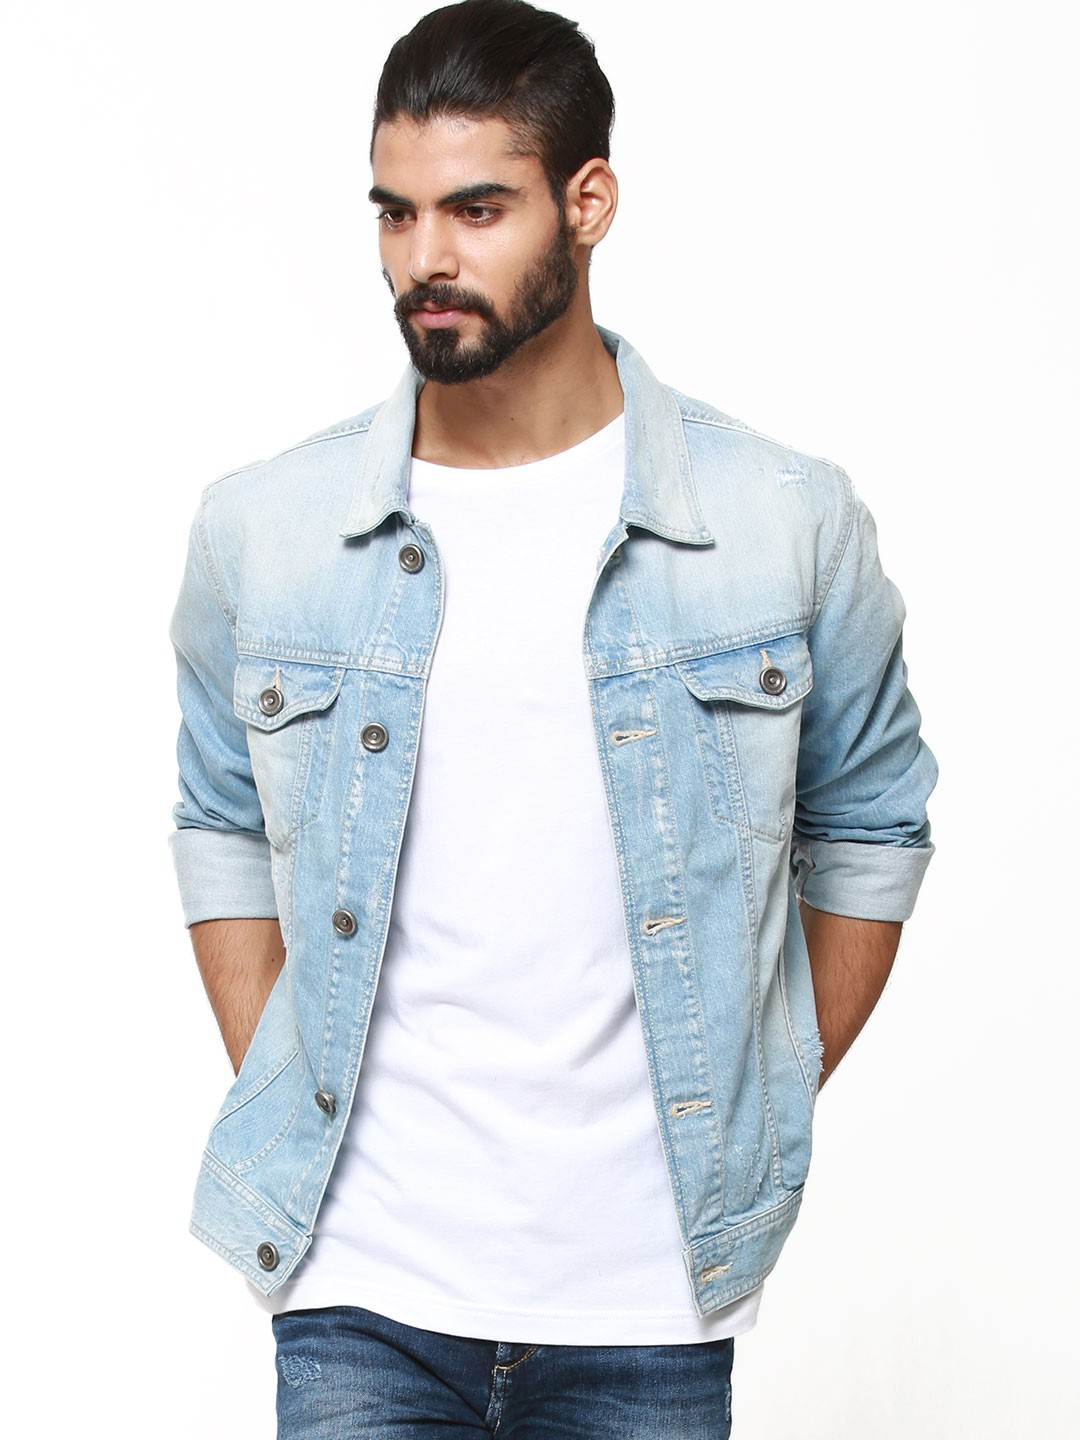 Buy Jean Jacket - Pl Jackets